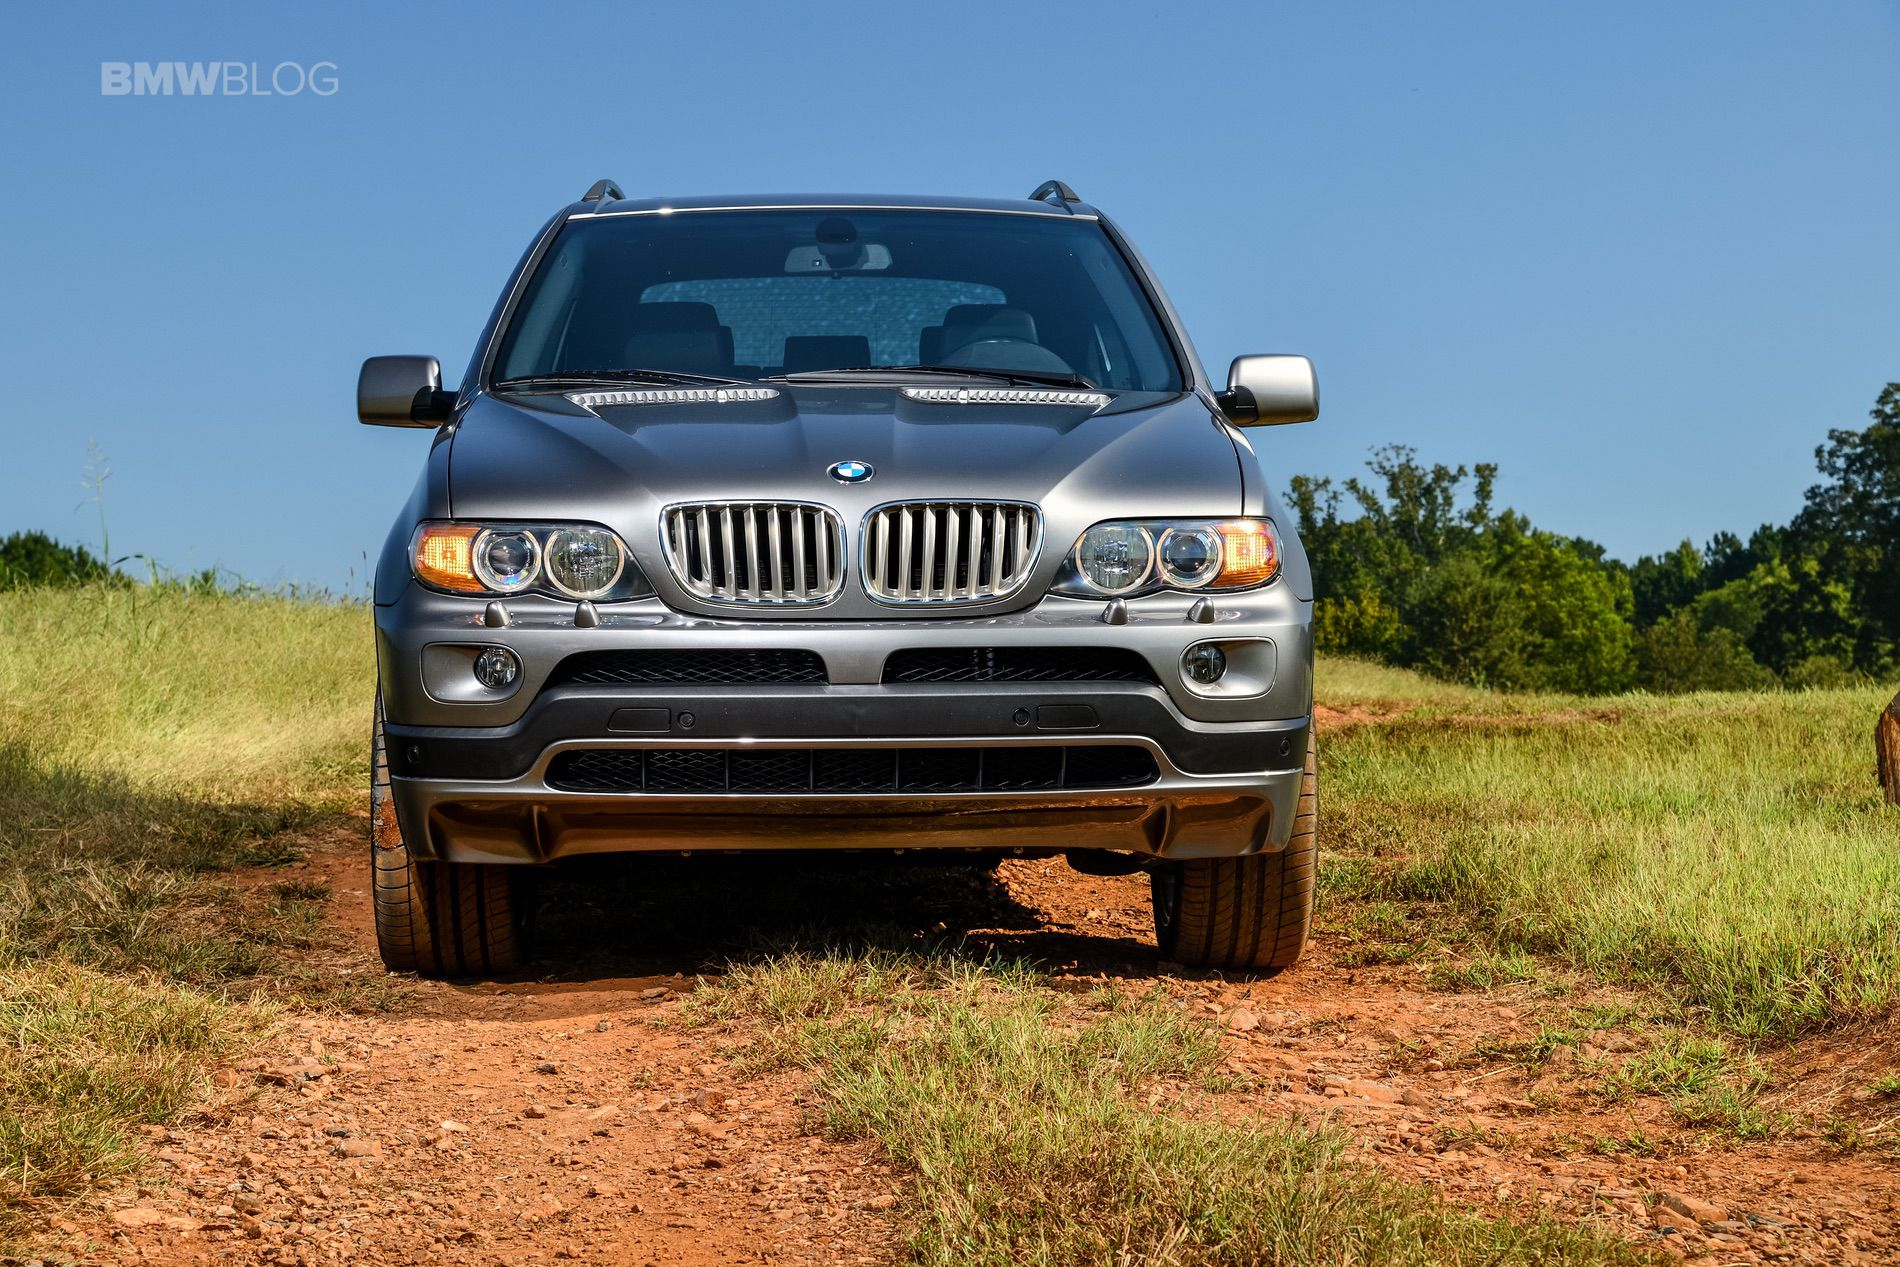 BMW X5 first generation 01